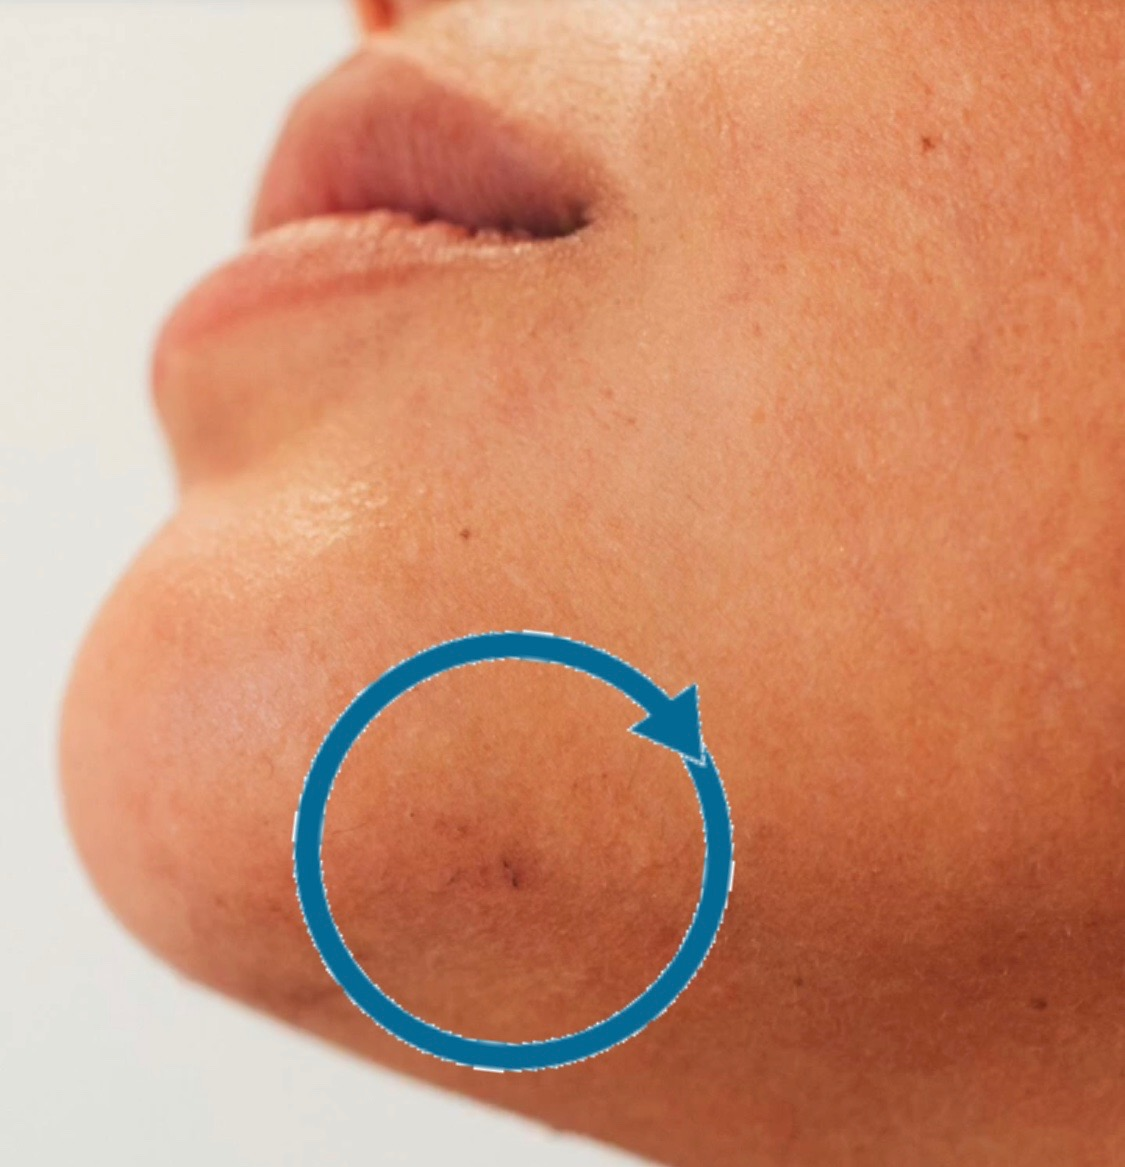 pcos hair removal picture circled